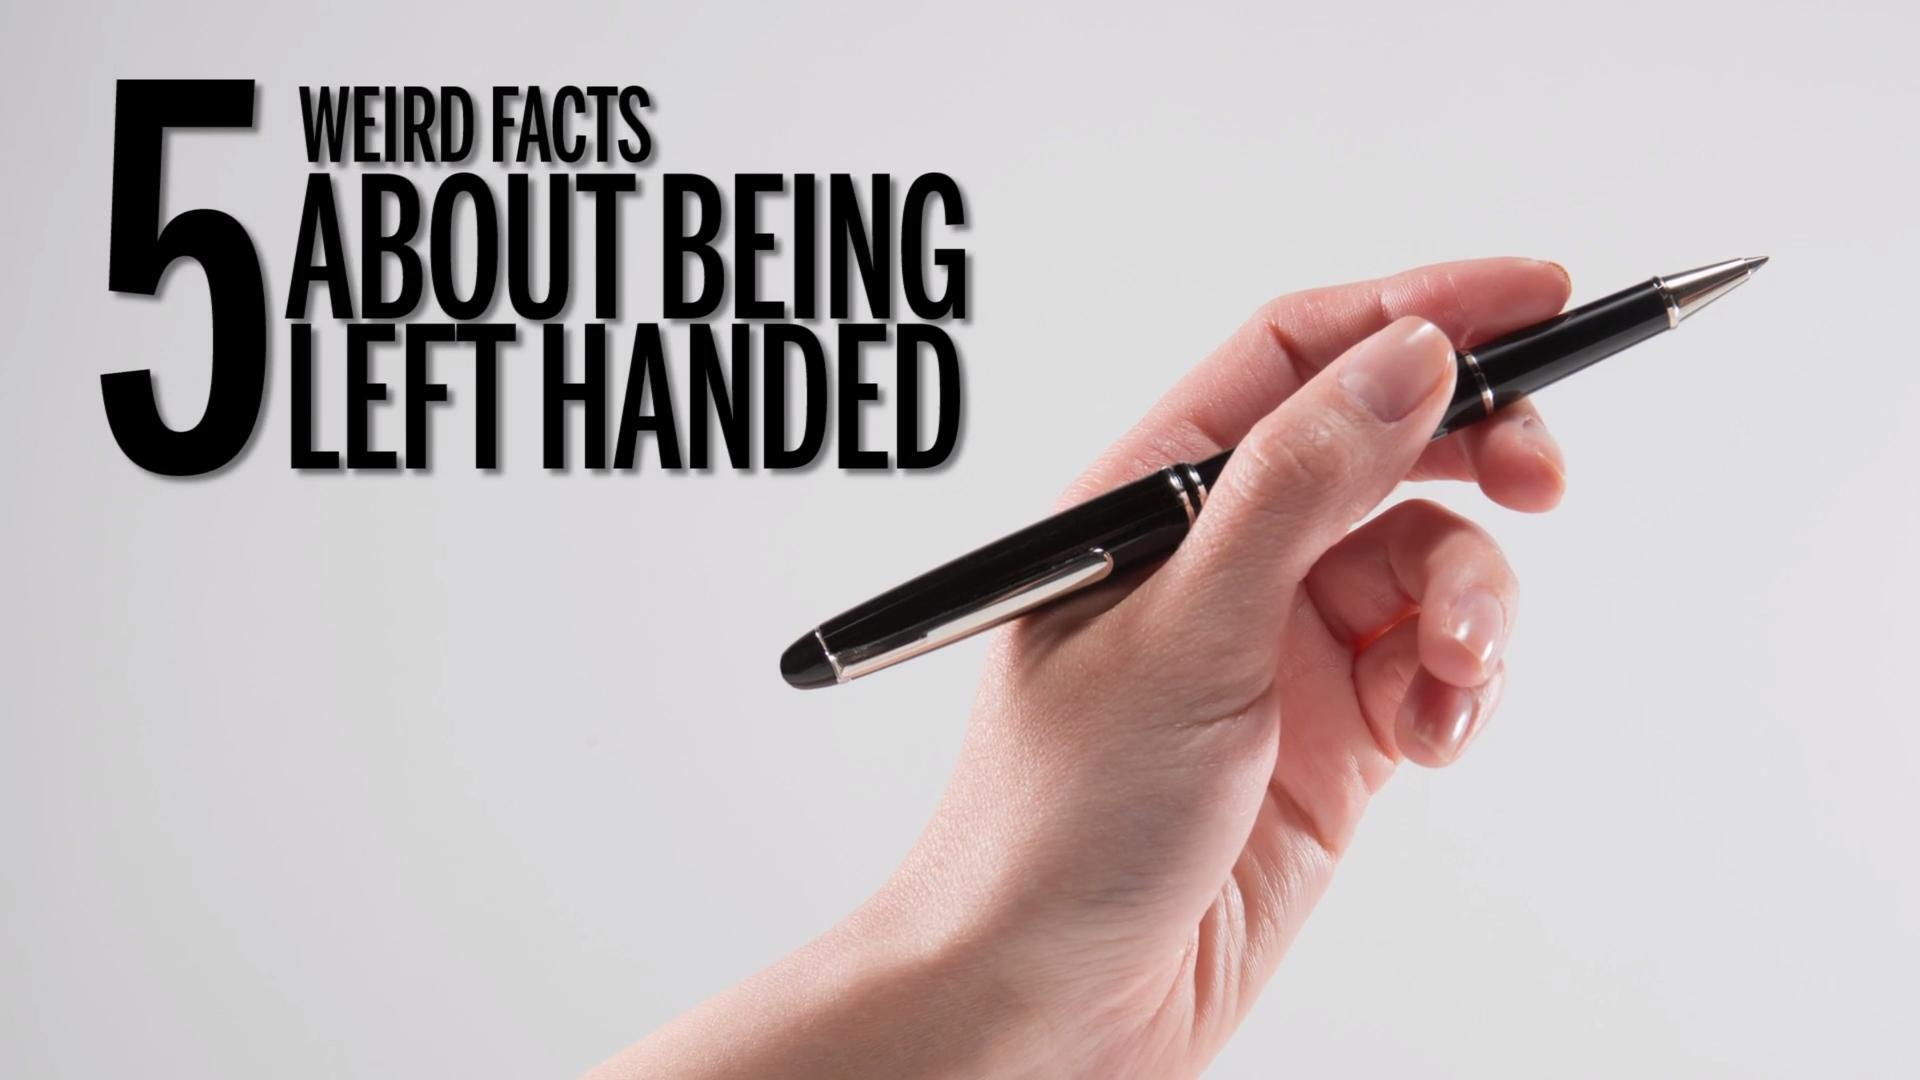 Myths, facts, and left-handed history